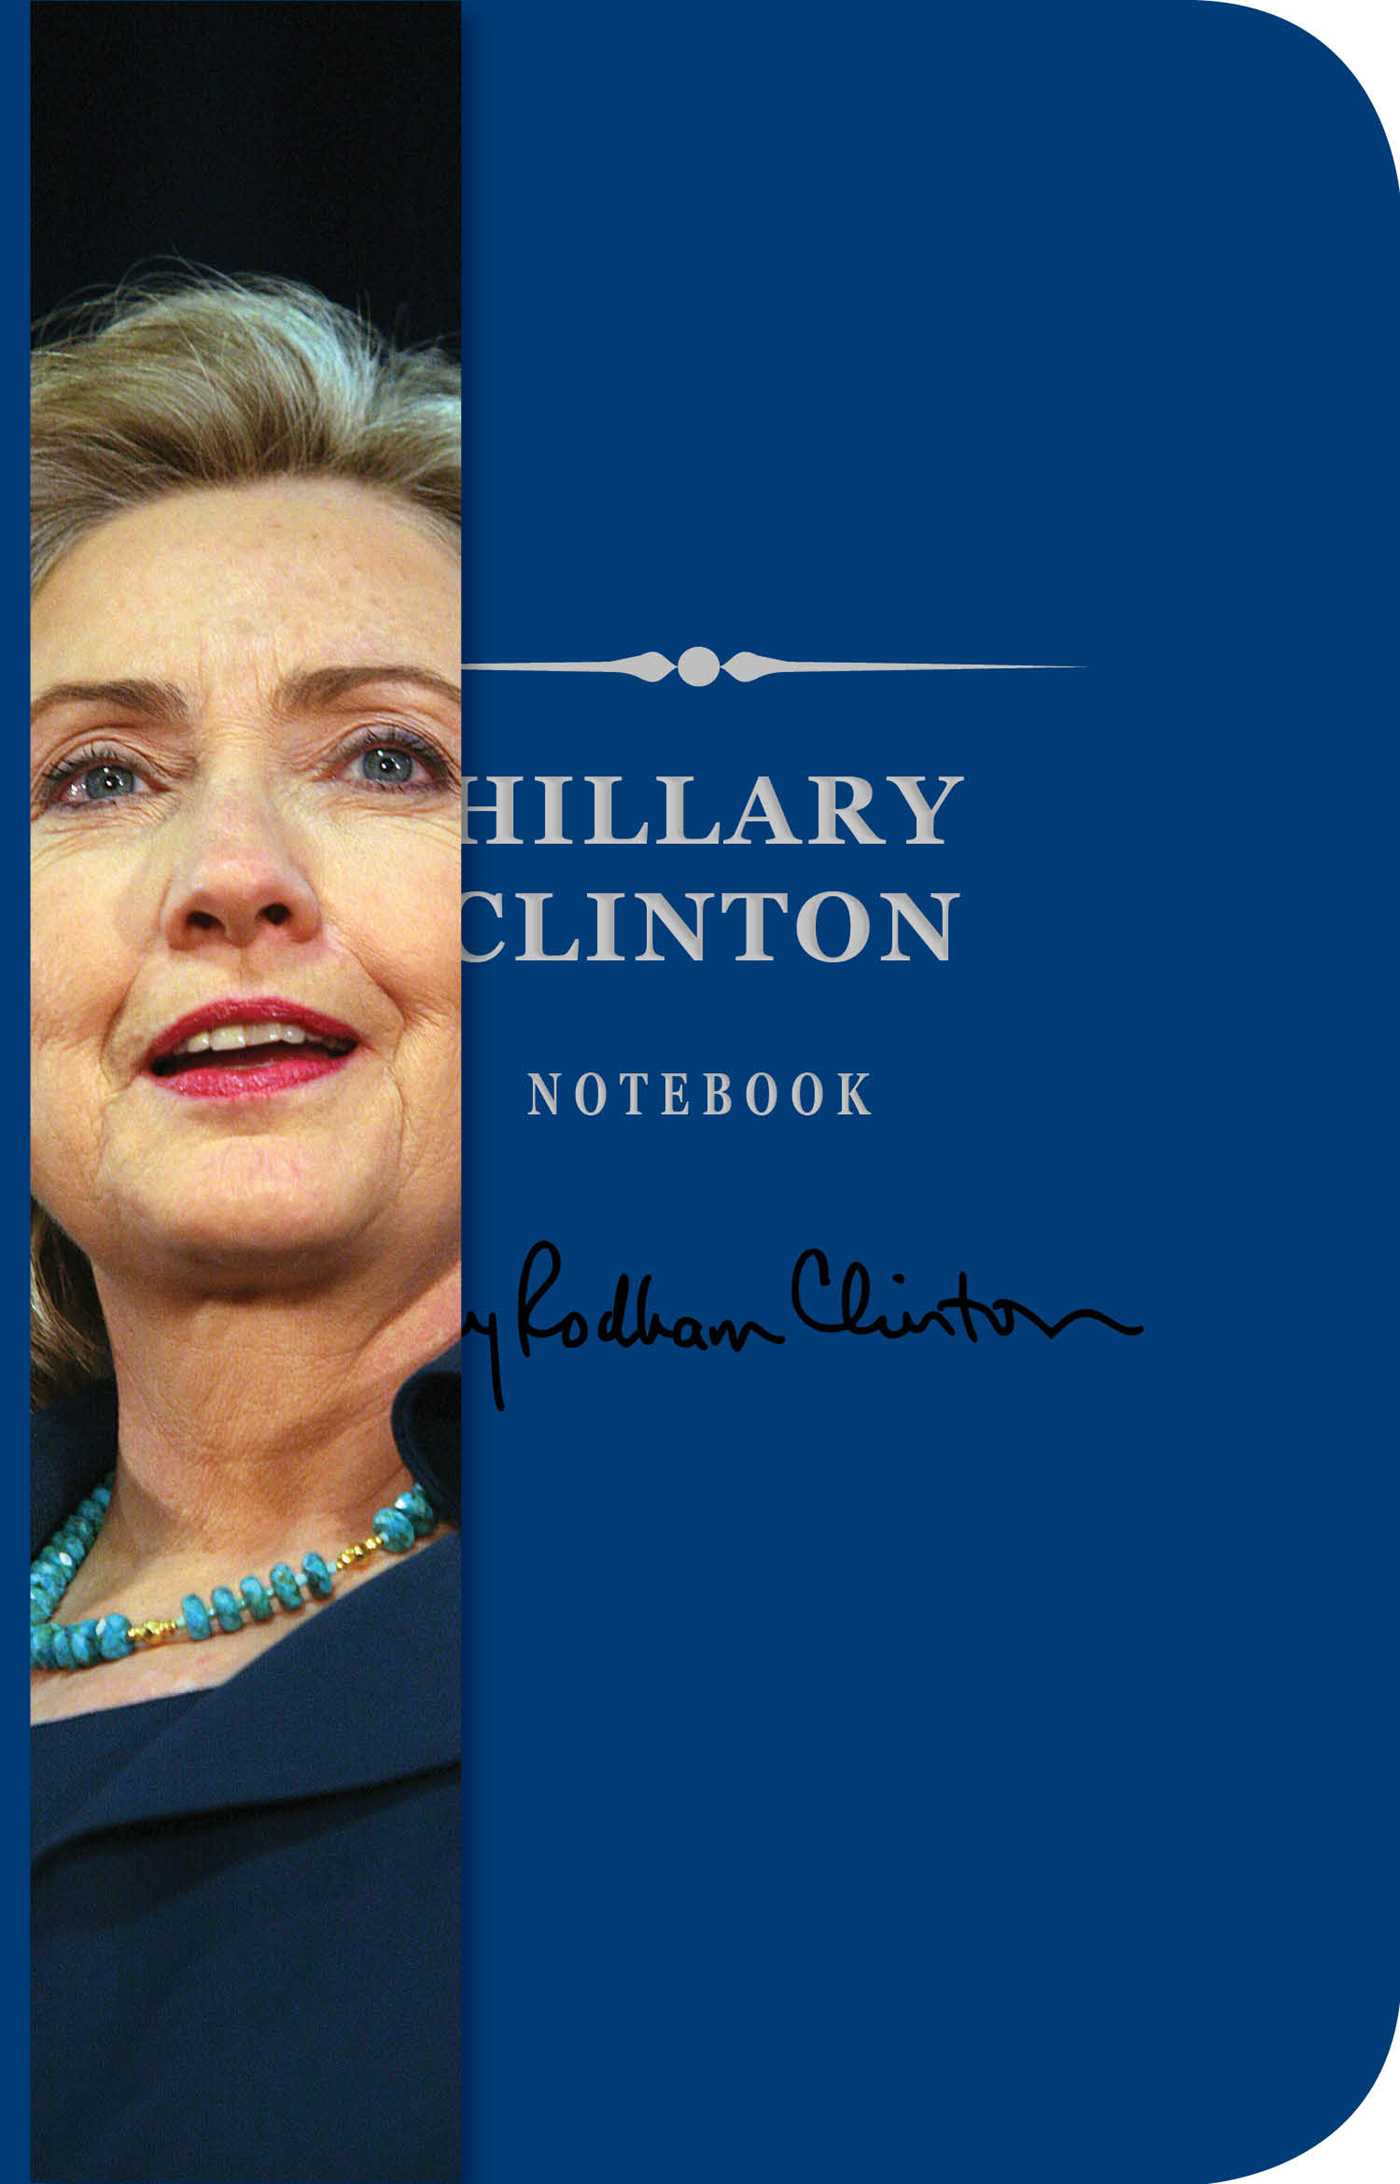 The hillary clinton notebook 9781604337808 hr